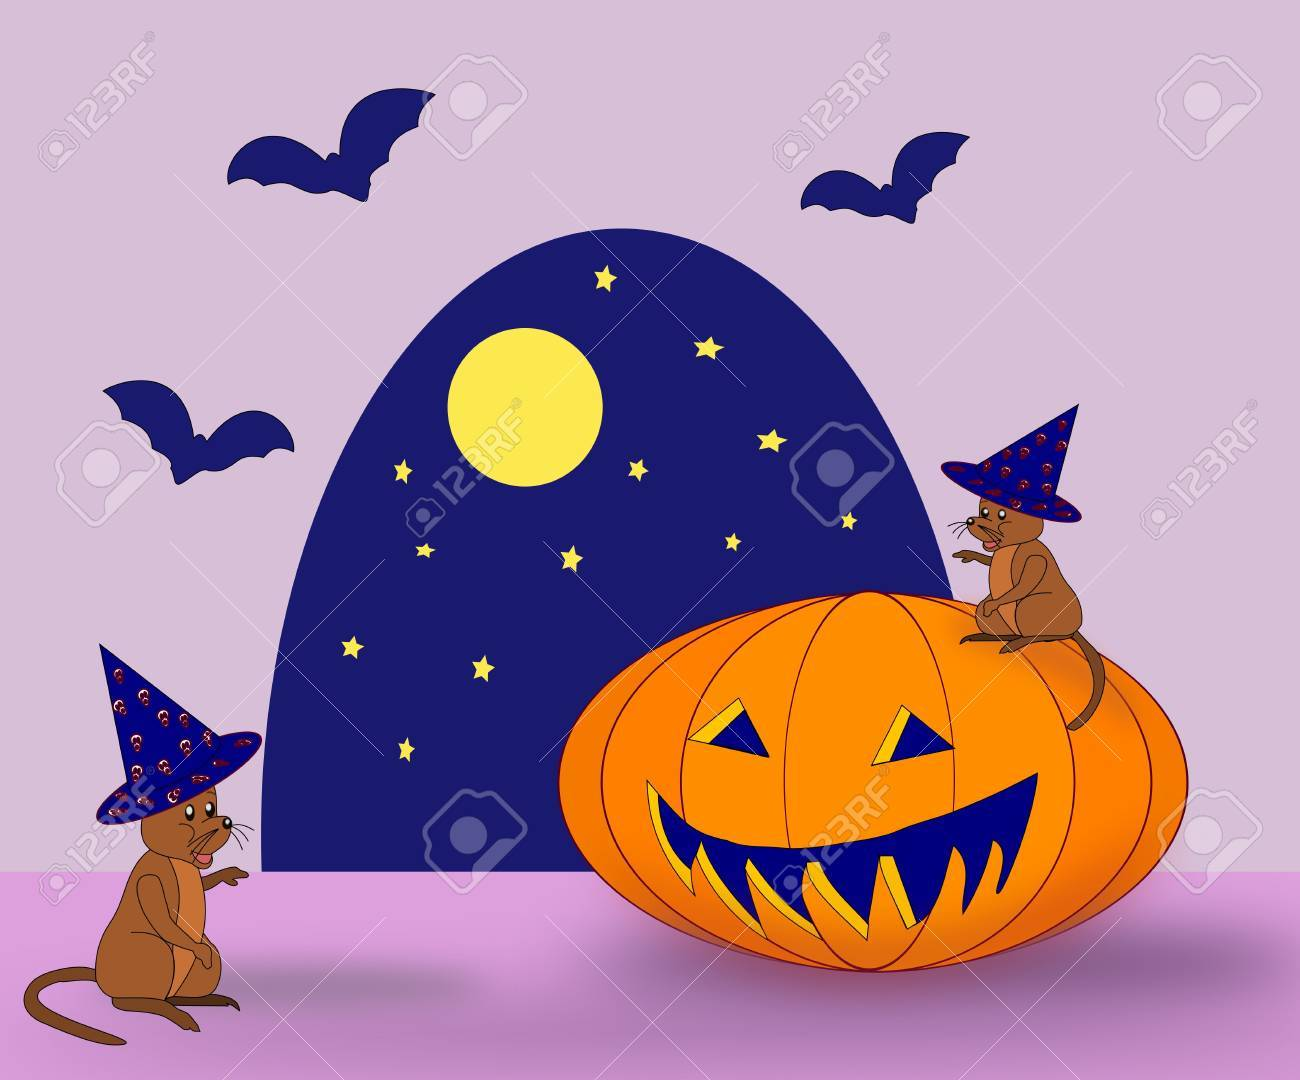 Two mice, a pumpkin and some bats Stock Photo - 13363216